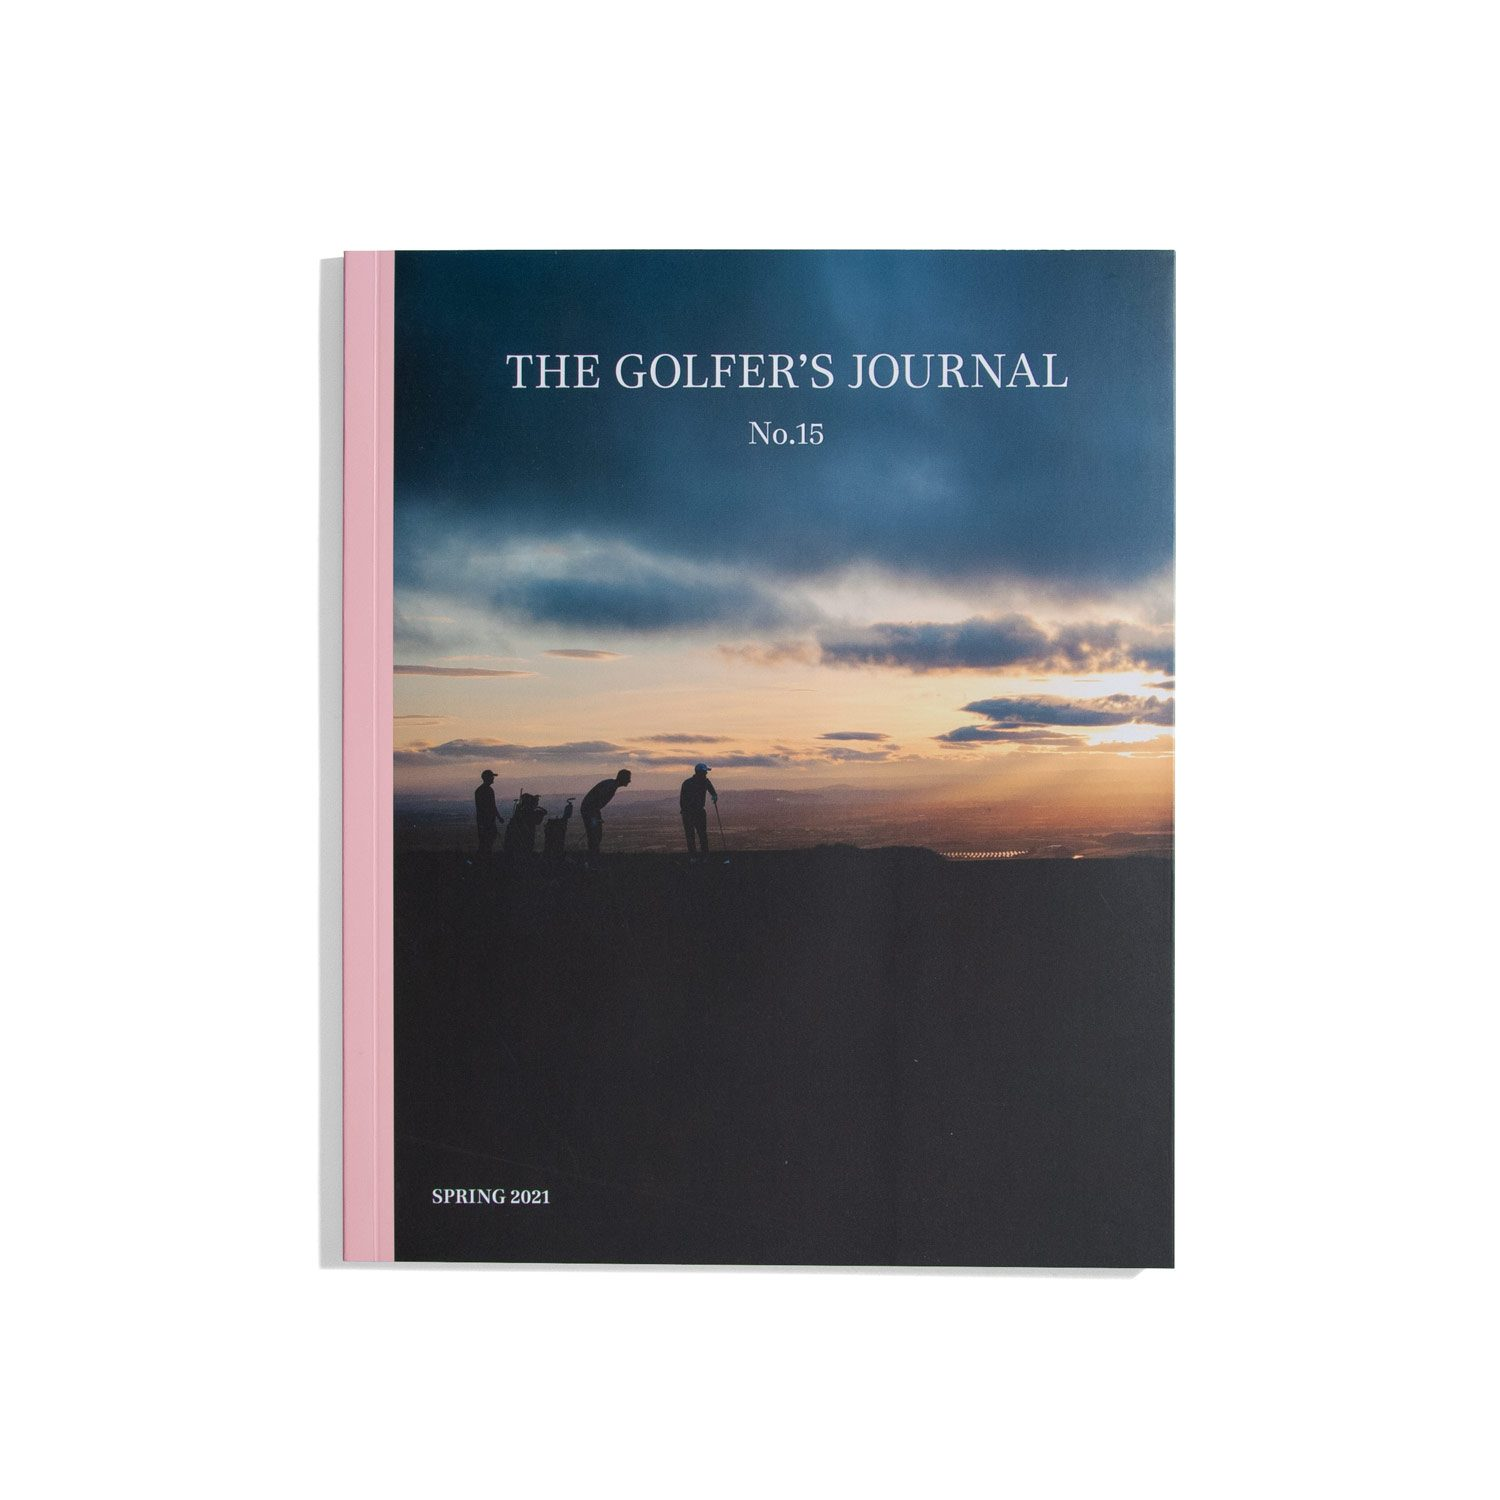 The Golfer's Journal #15 Spring 2021